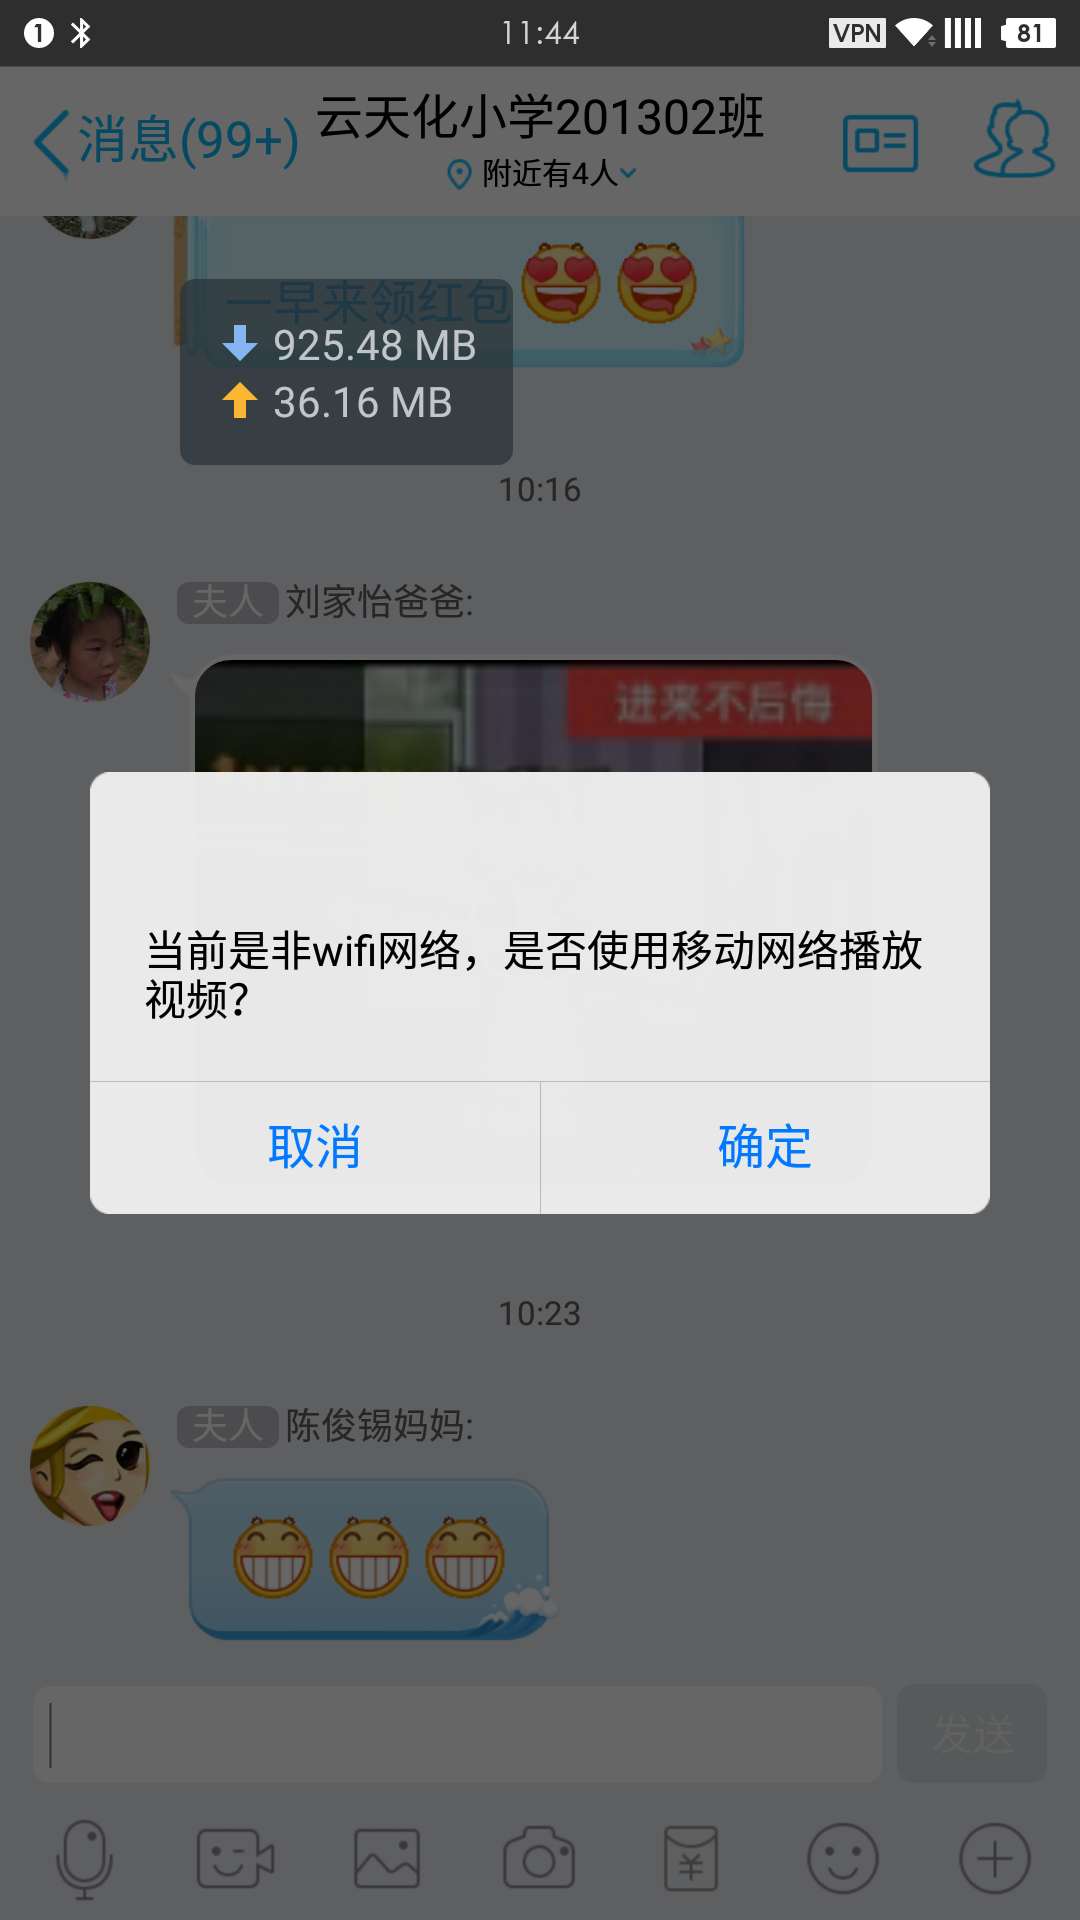 Screenshot_2015-12-19-11-44-20.png